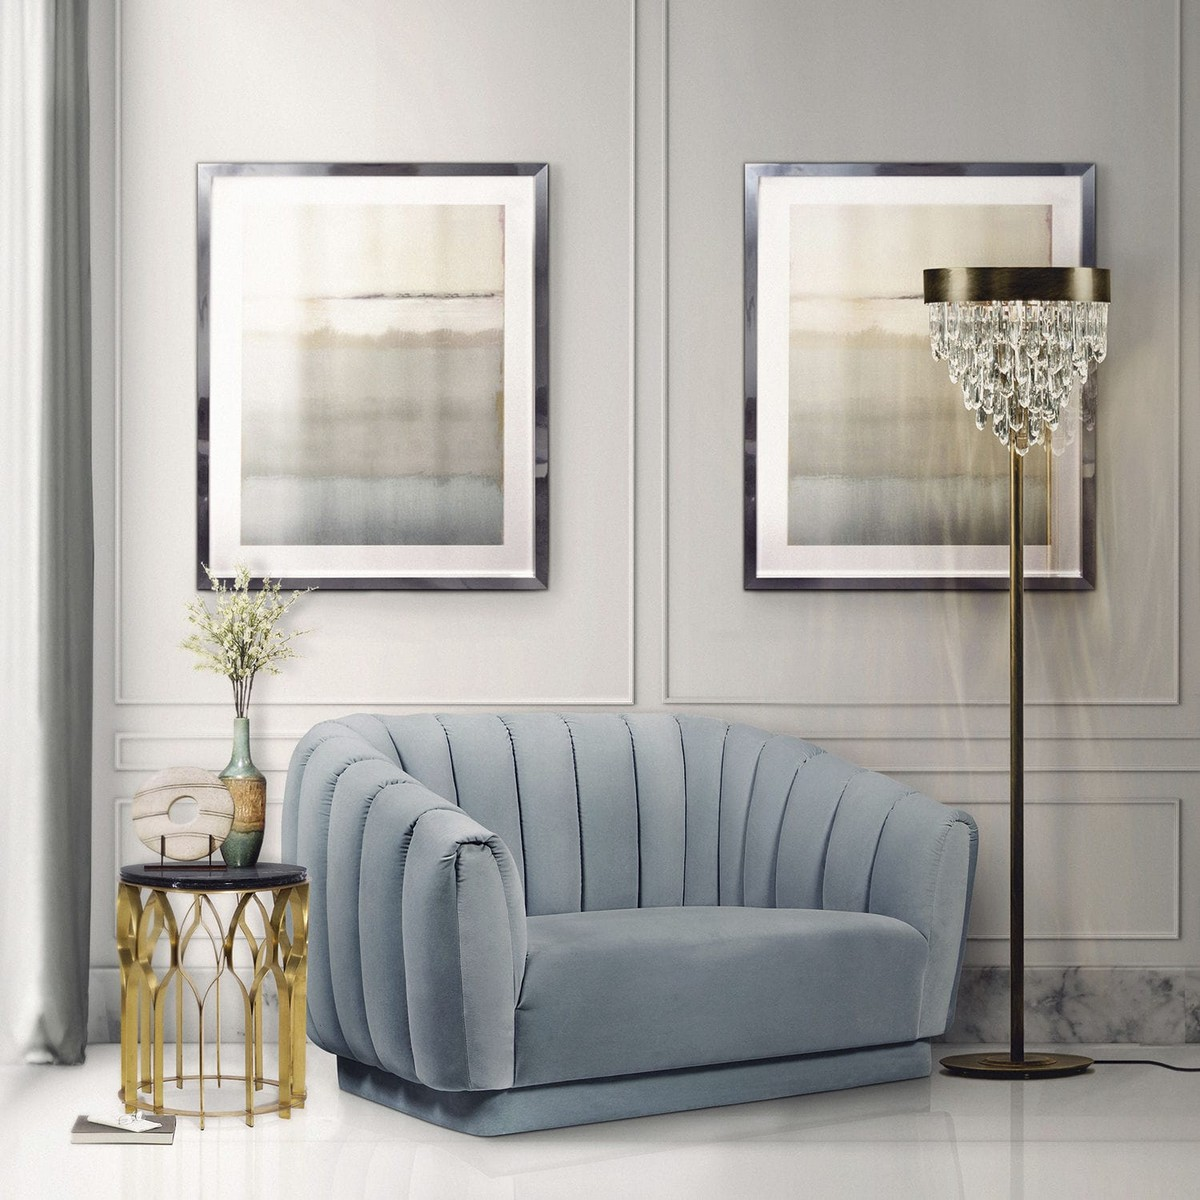 Exclusive Lighting Designs You Will Love (Part II) exclusive lighting designs Exclusive Lighting Designs You Will Love (Part II) naicca floor lamp